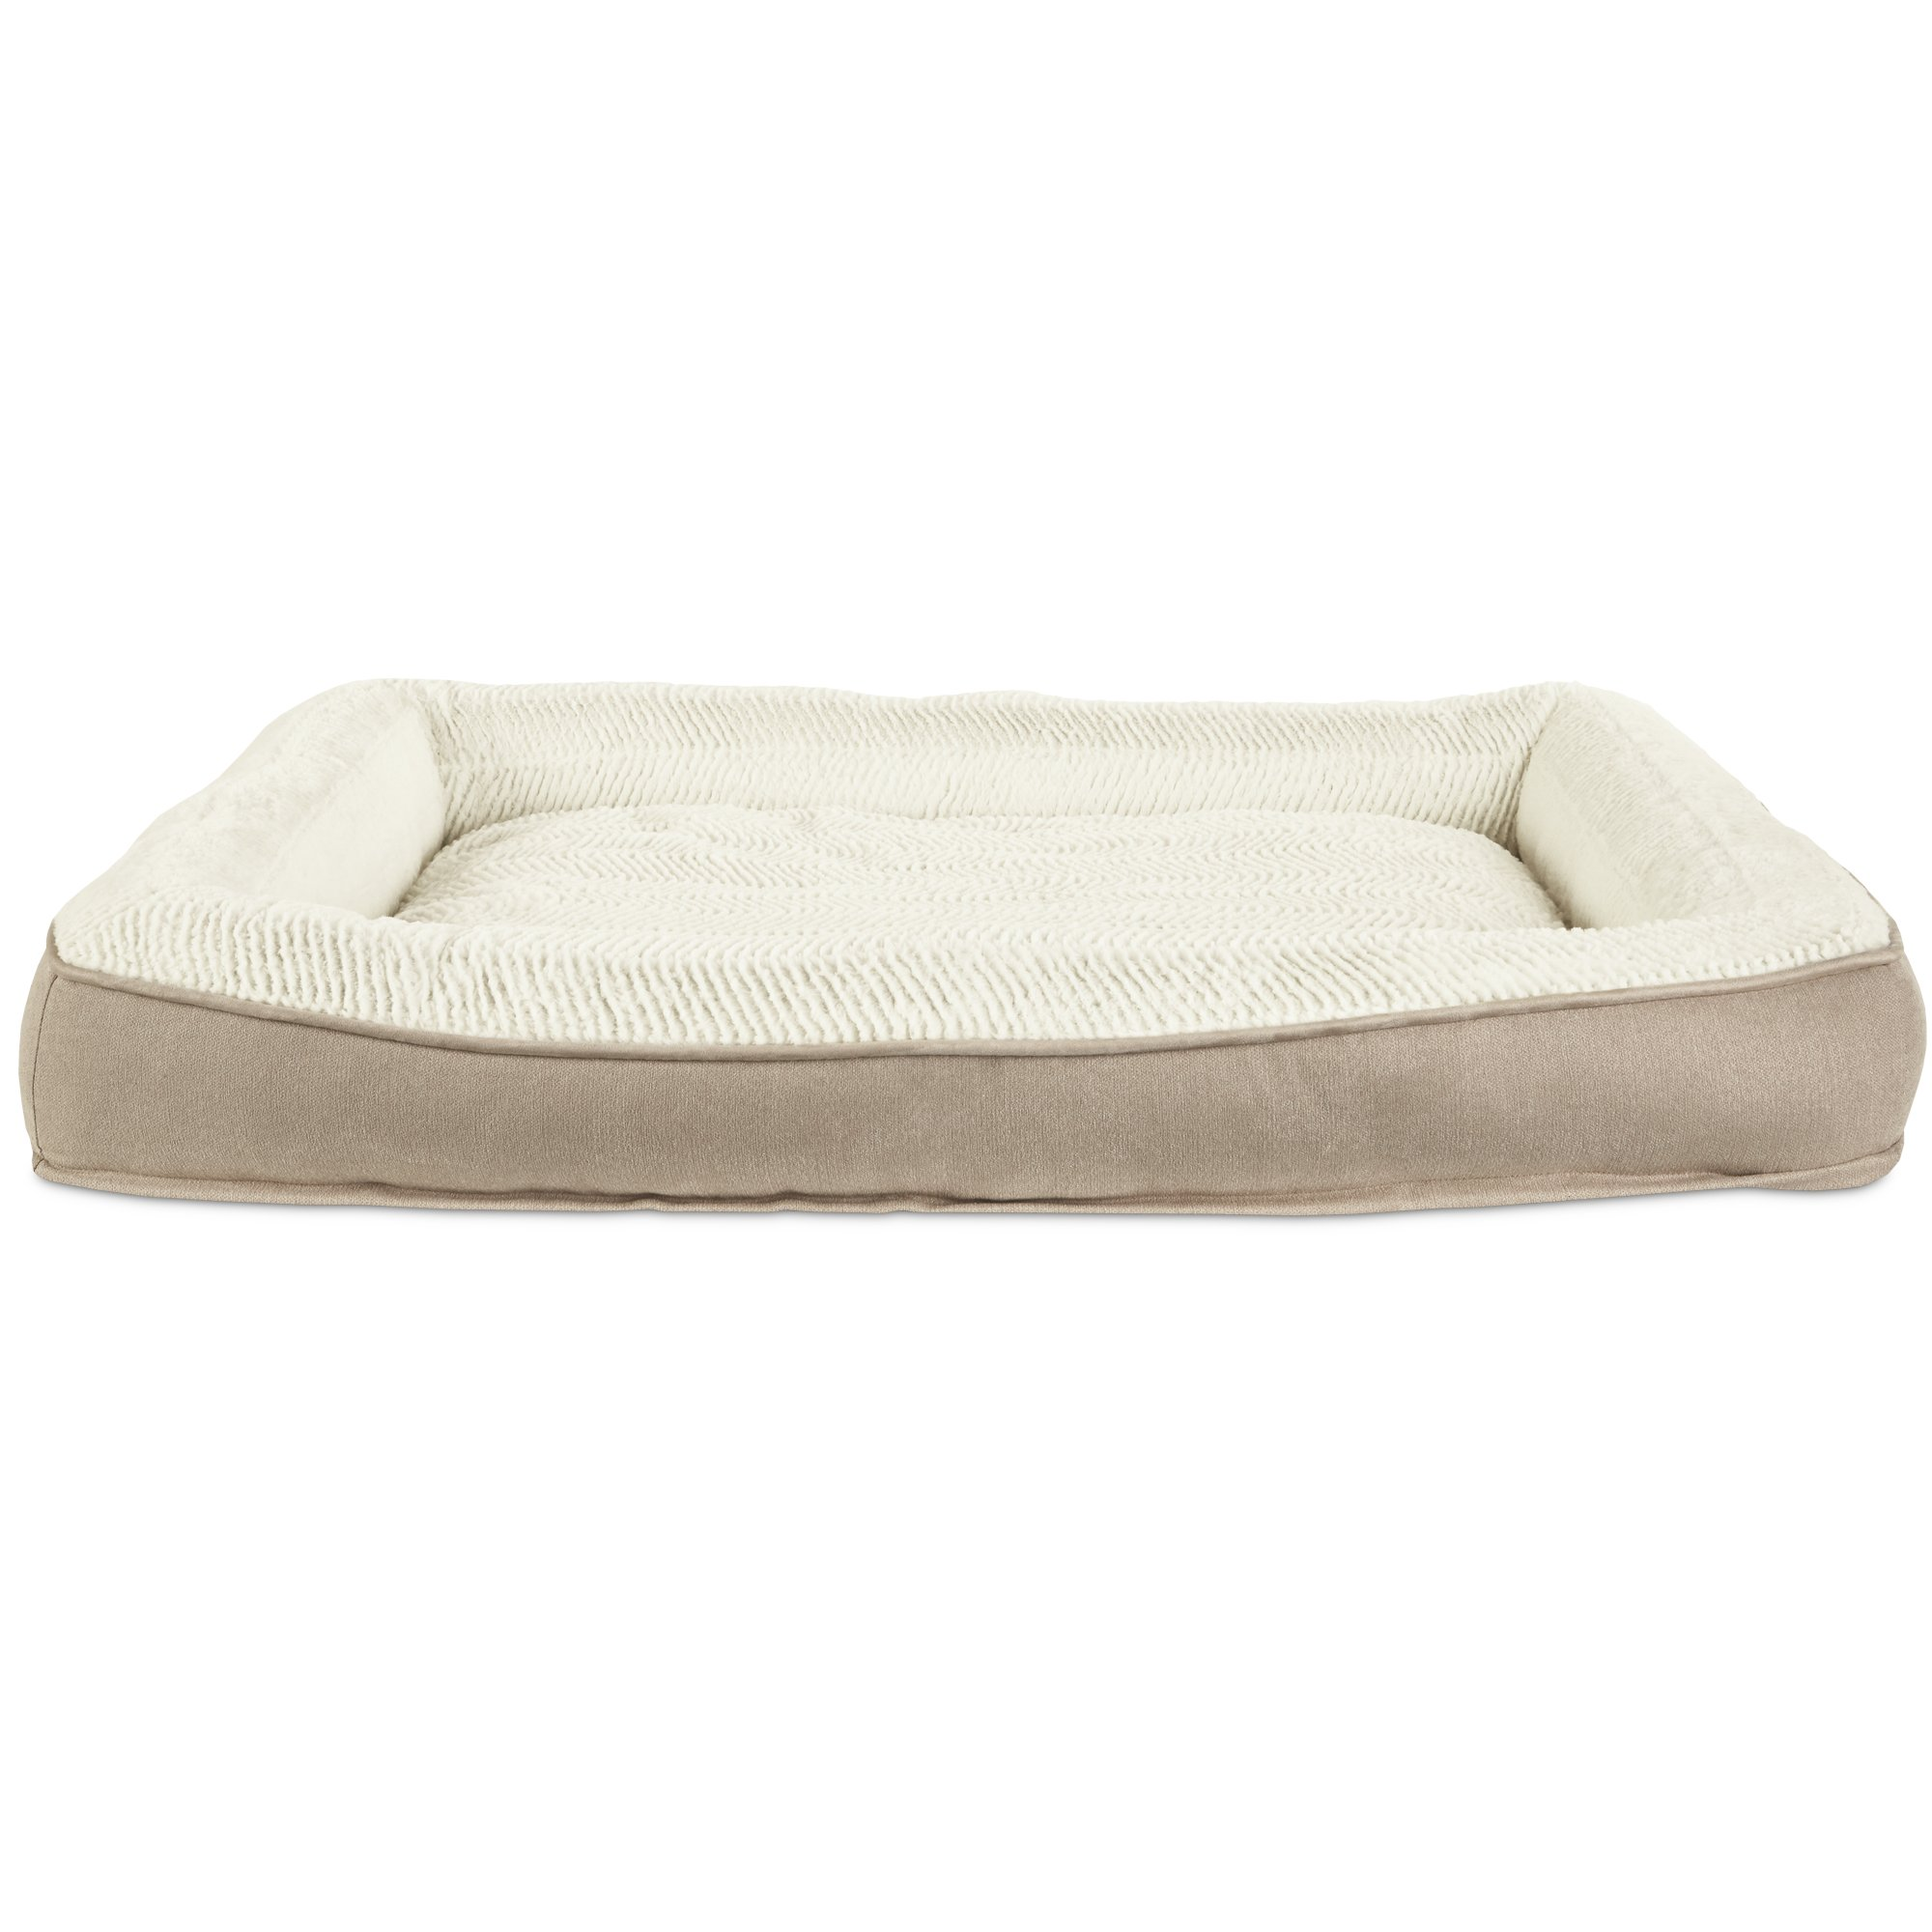 pin petcostore wall side petco com shop en beds bed brown cream box product dog super supplies in cushiony